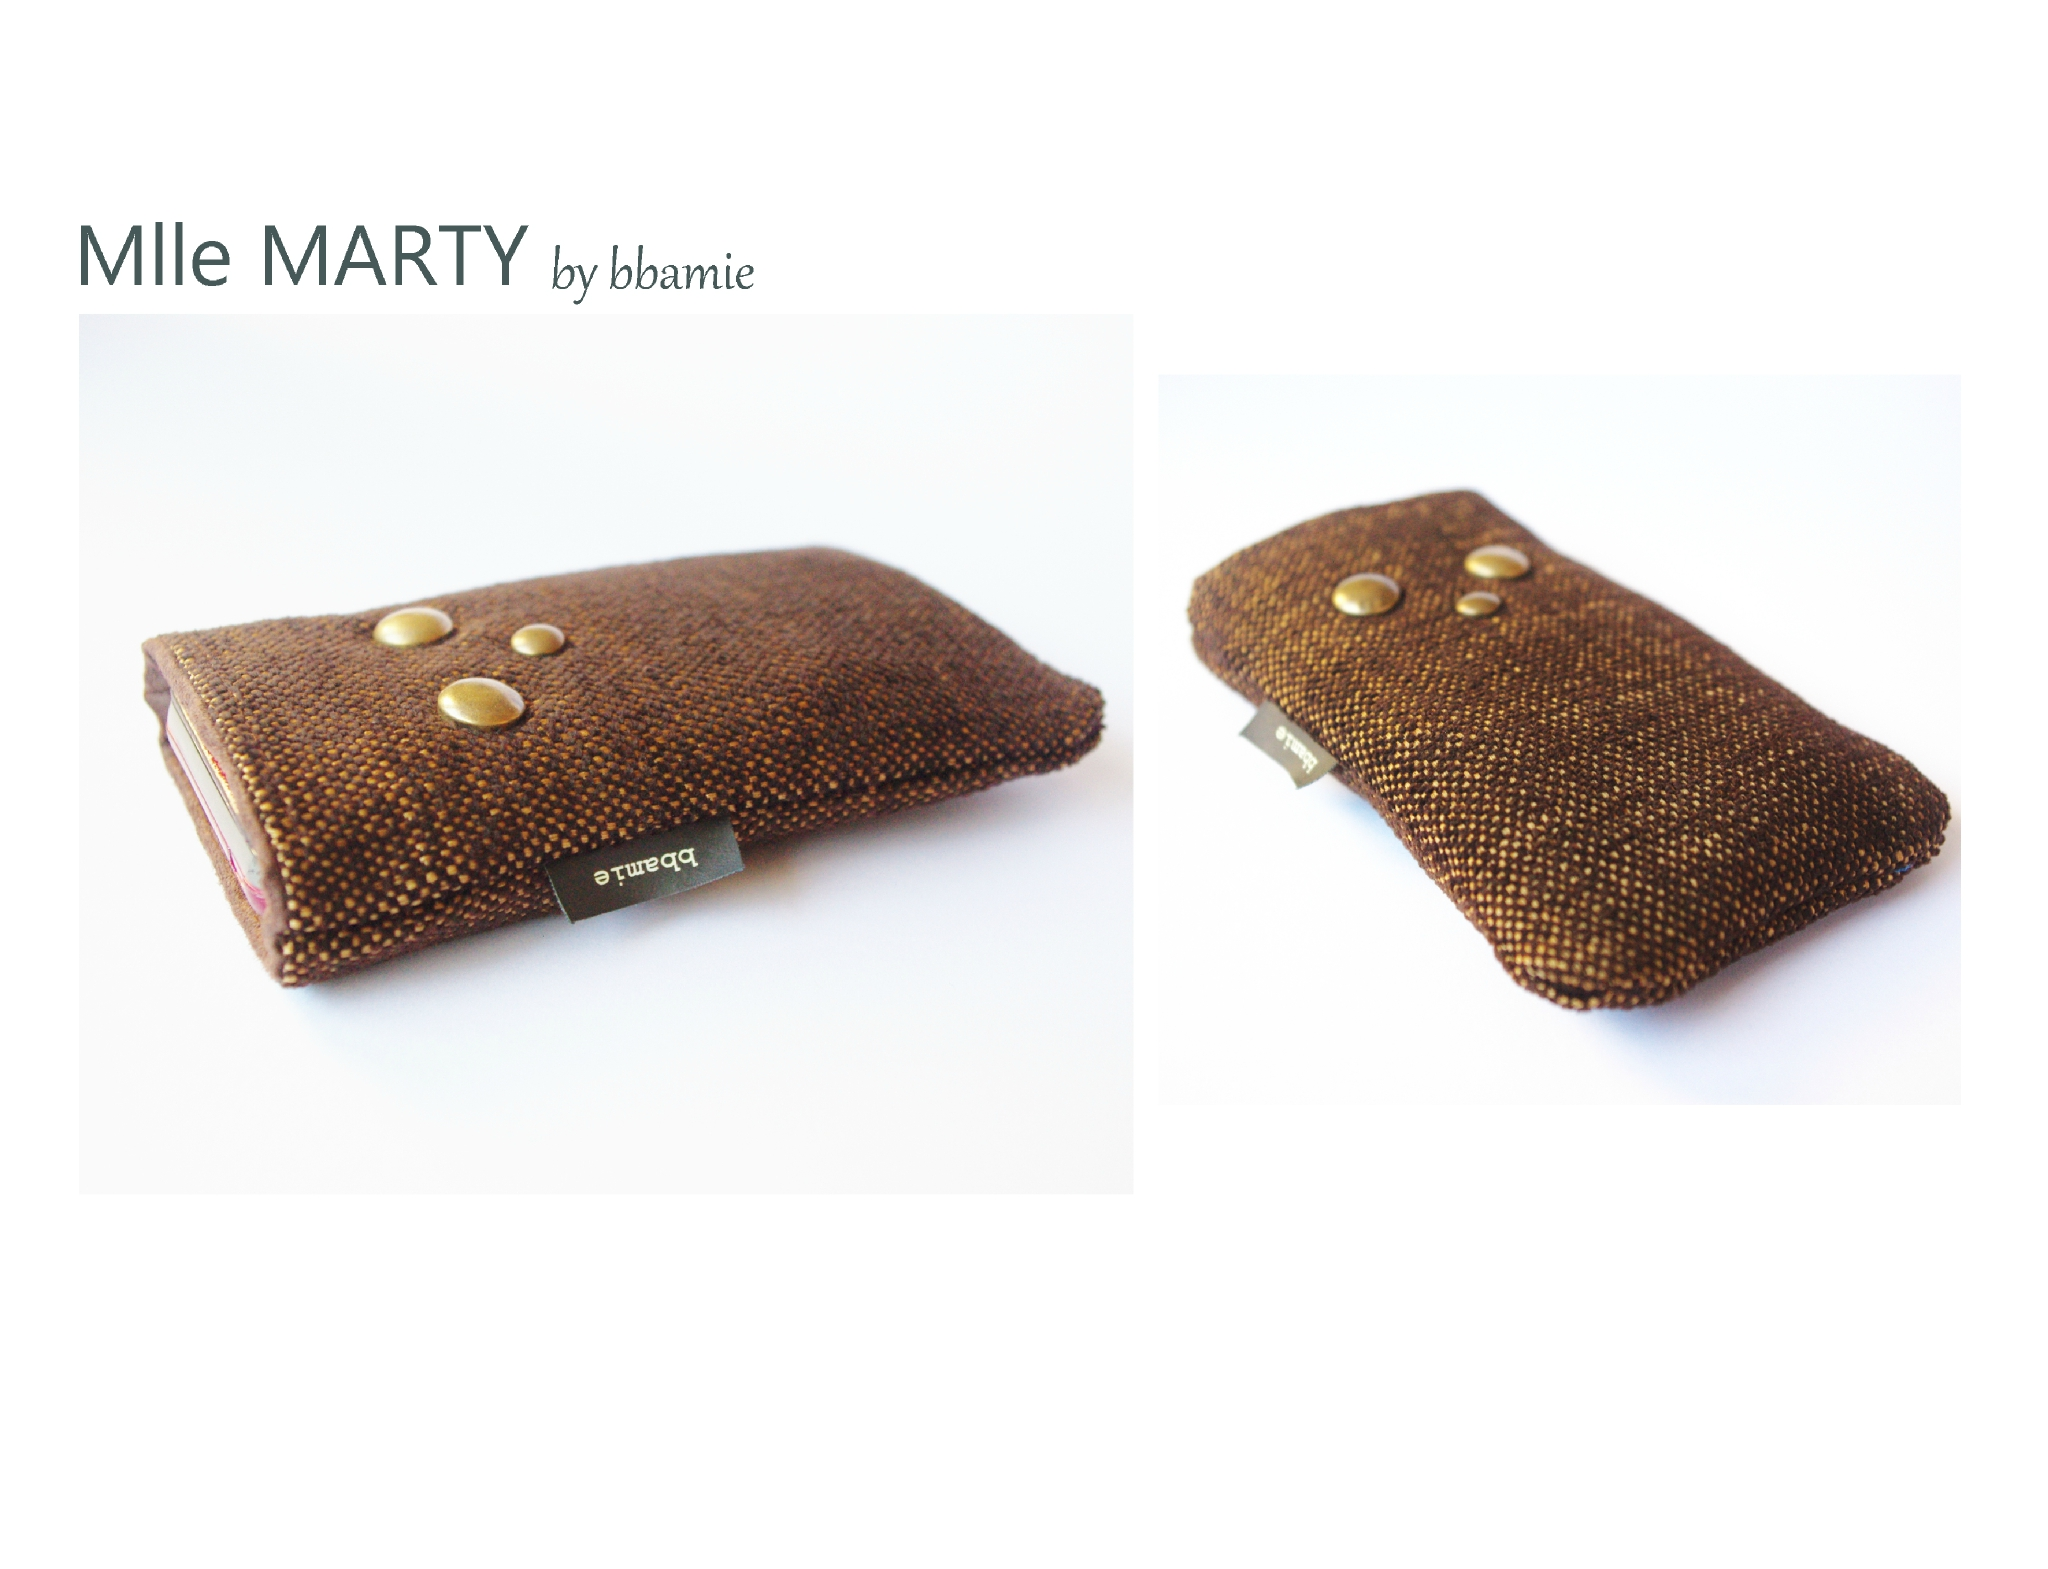 mlle MARTY